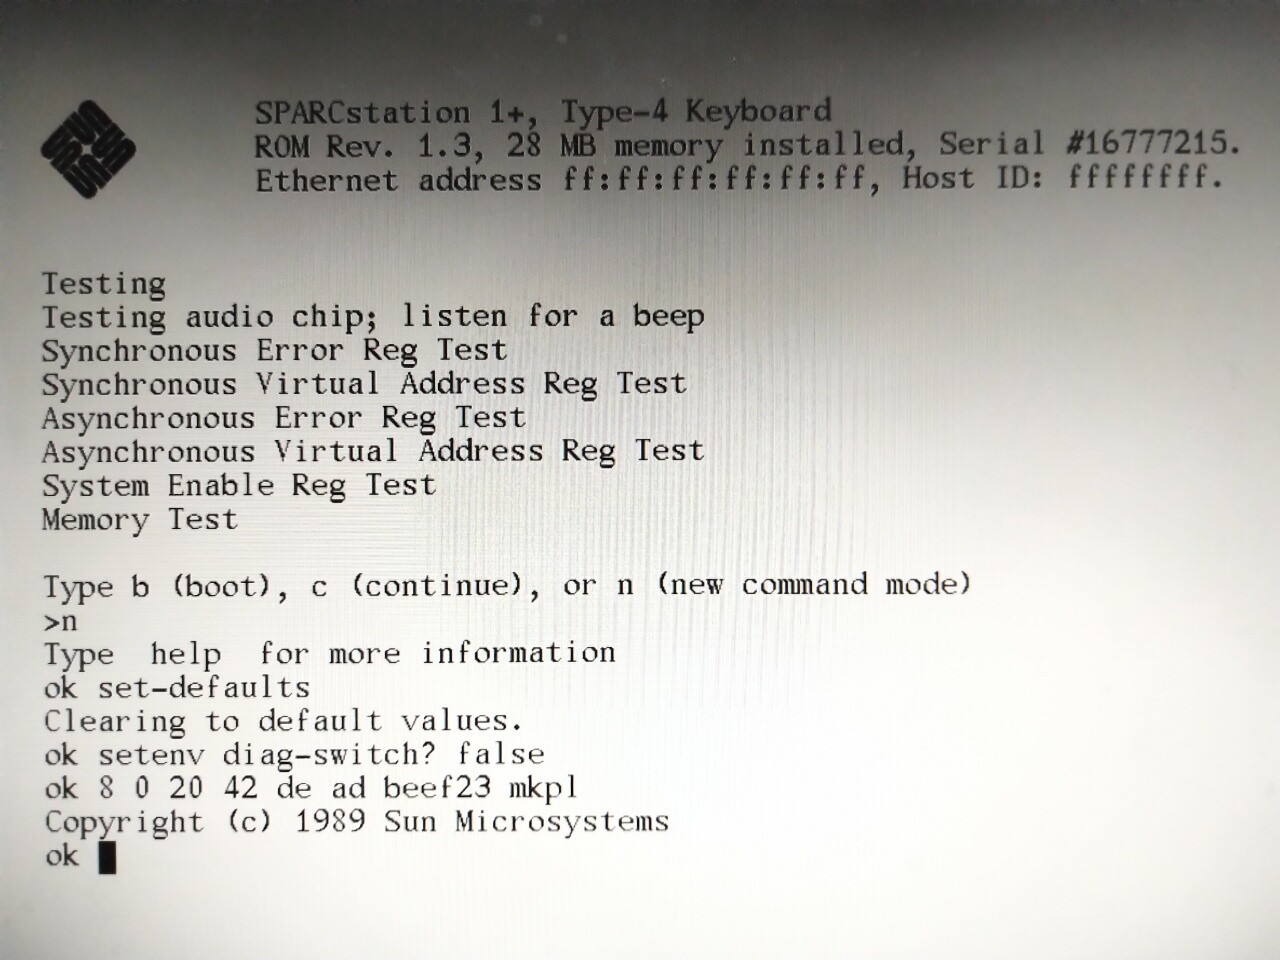 quick IDPROM rewrite using mkpl on a Sparcstation 1+